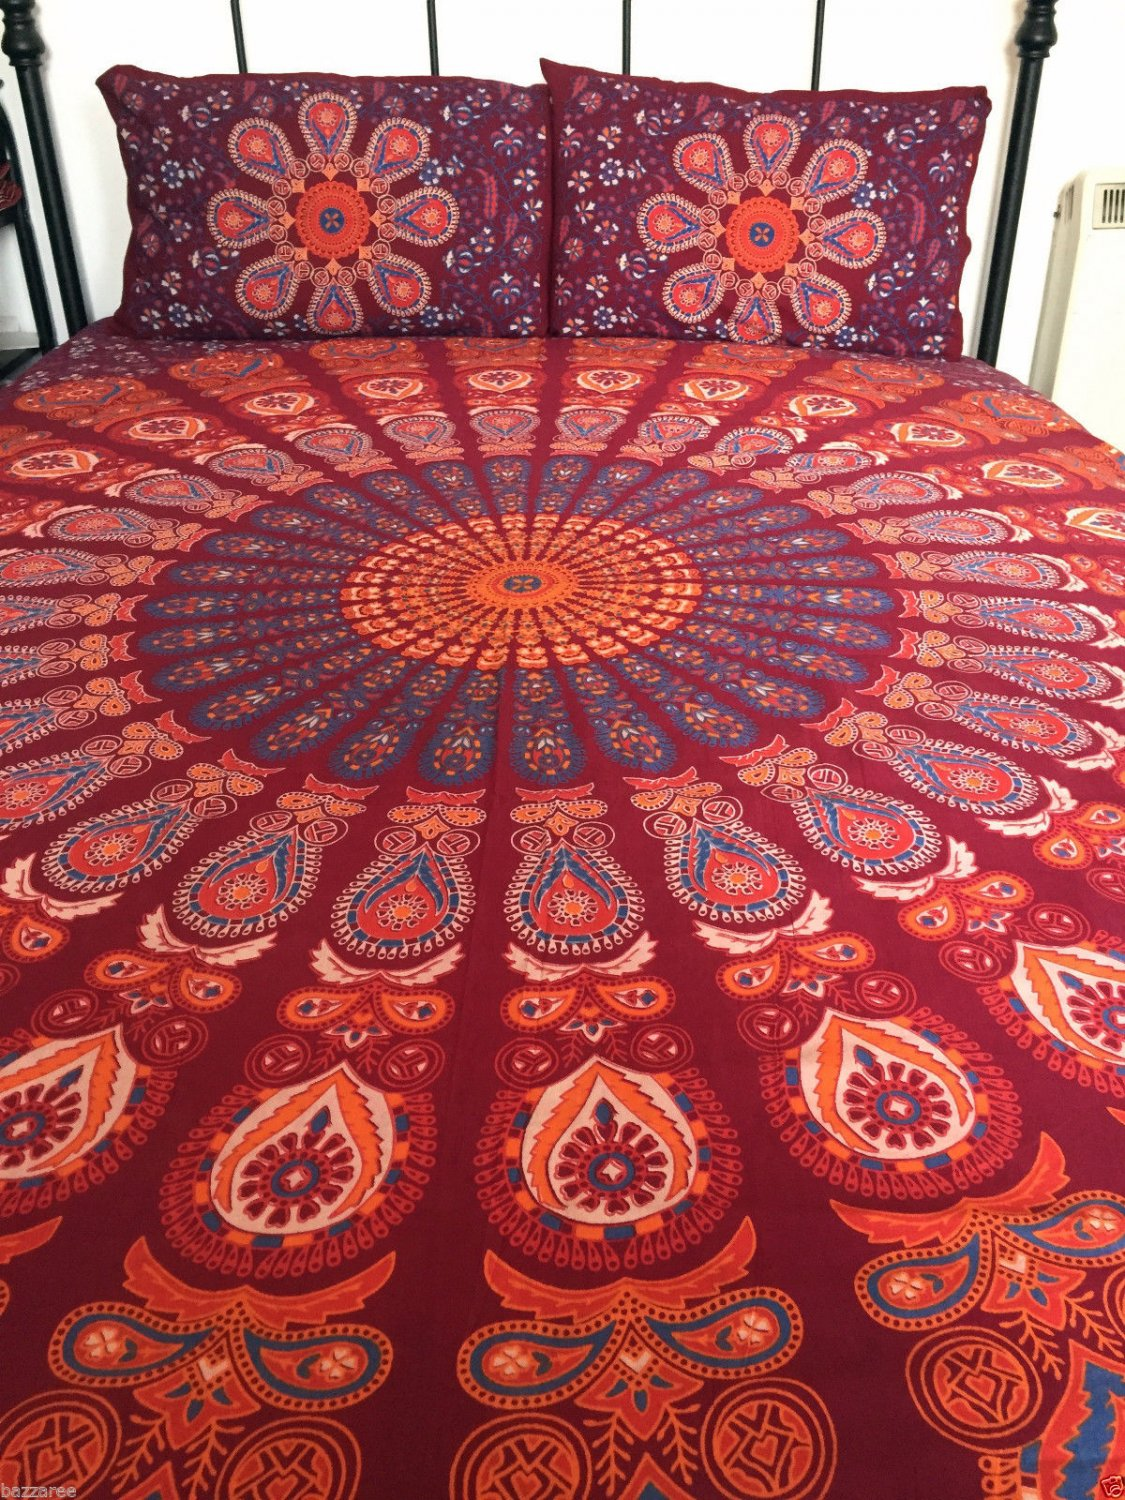 Indian Tapestry Wall Hanging Mandala Throw Bedspread Gypsy Pillow Cover Double